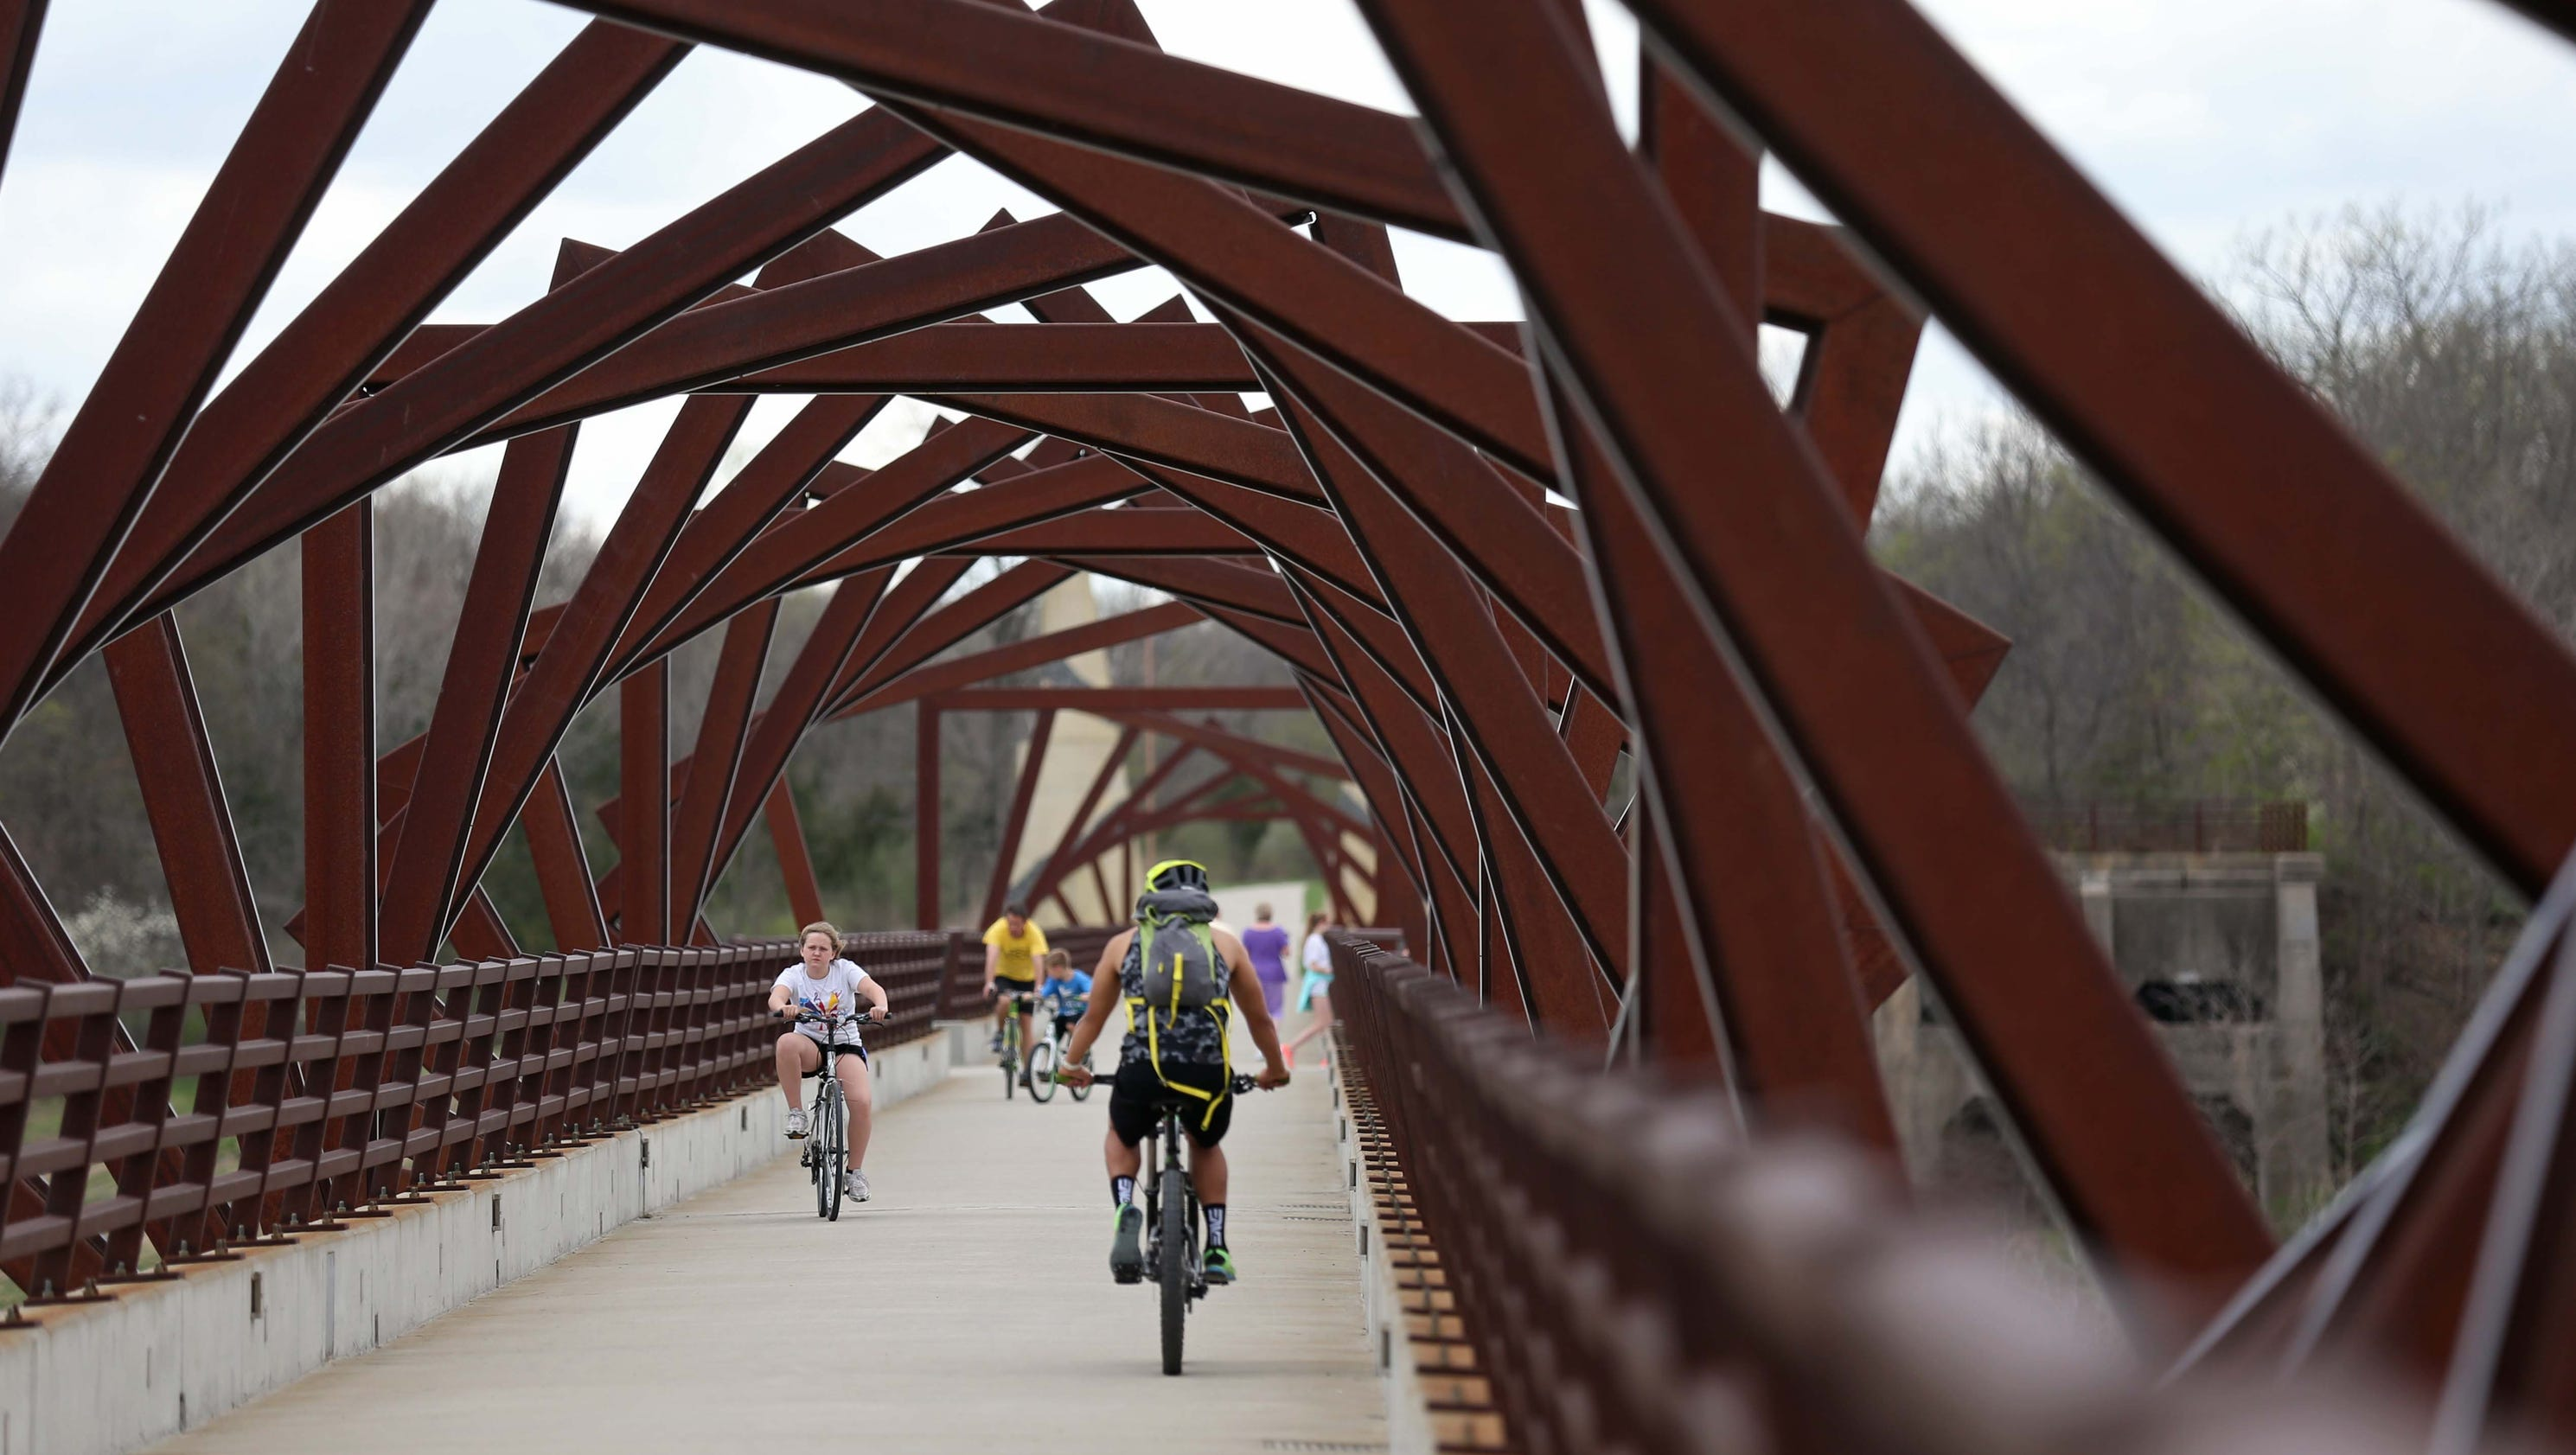 10 Photos A Spring Day On The High Trestle Trail